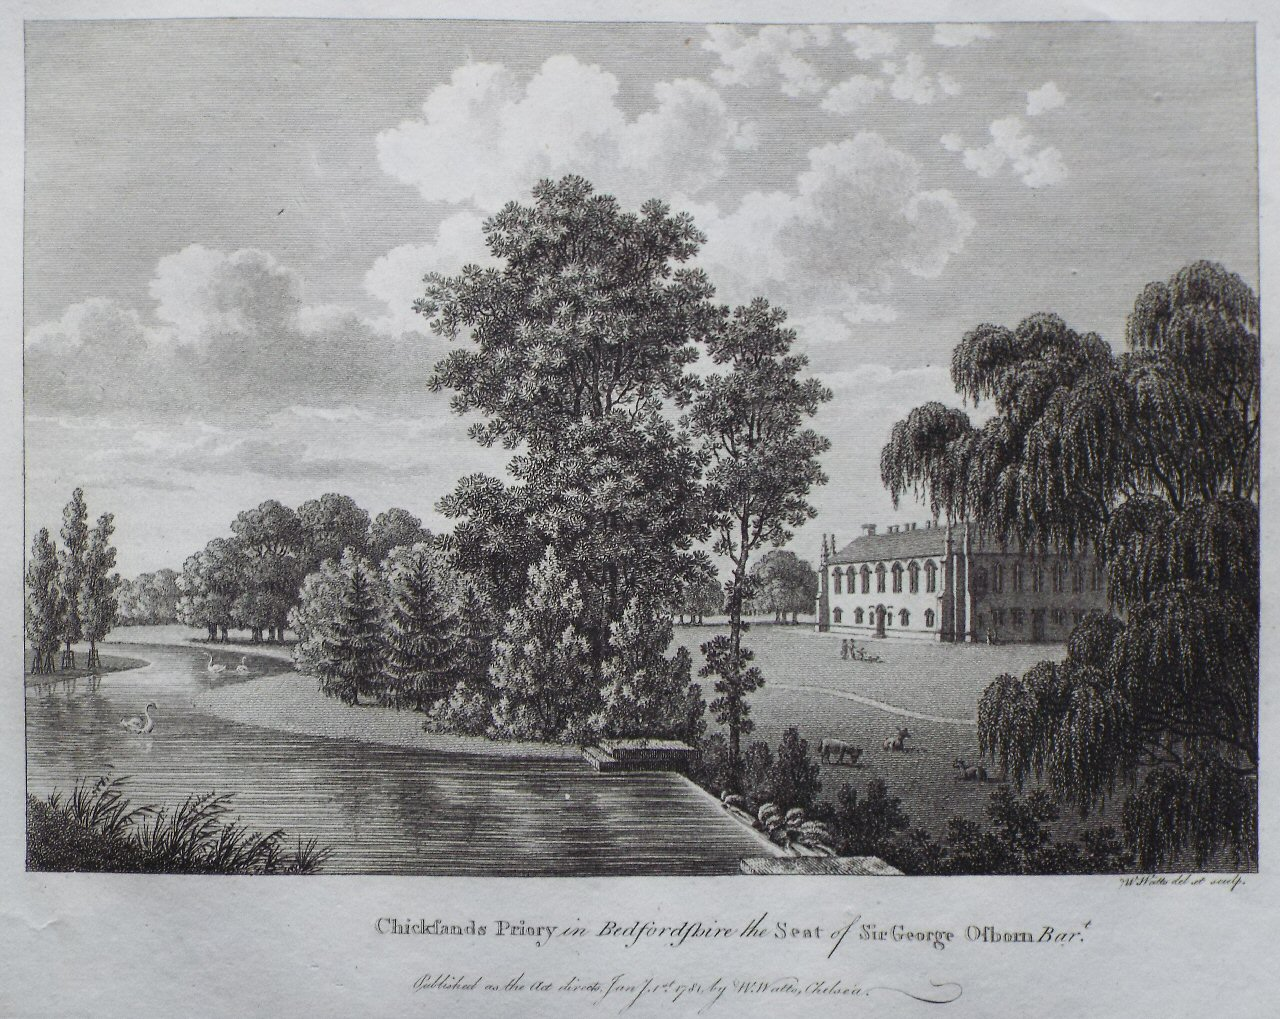 Print - Chicksands Priory in Bedfordshire the Seat of Sir George Osborn Bart. - Watts